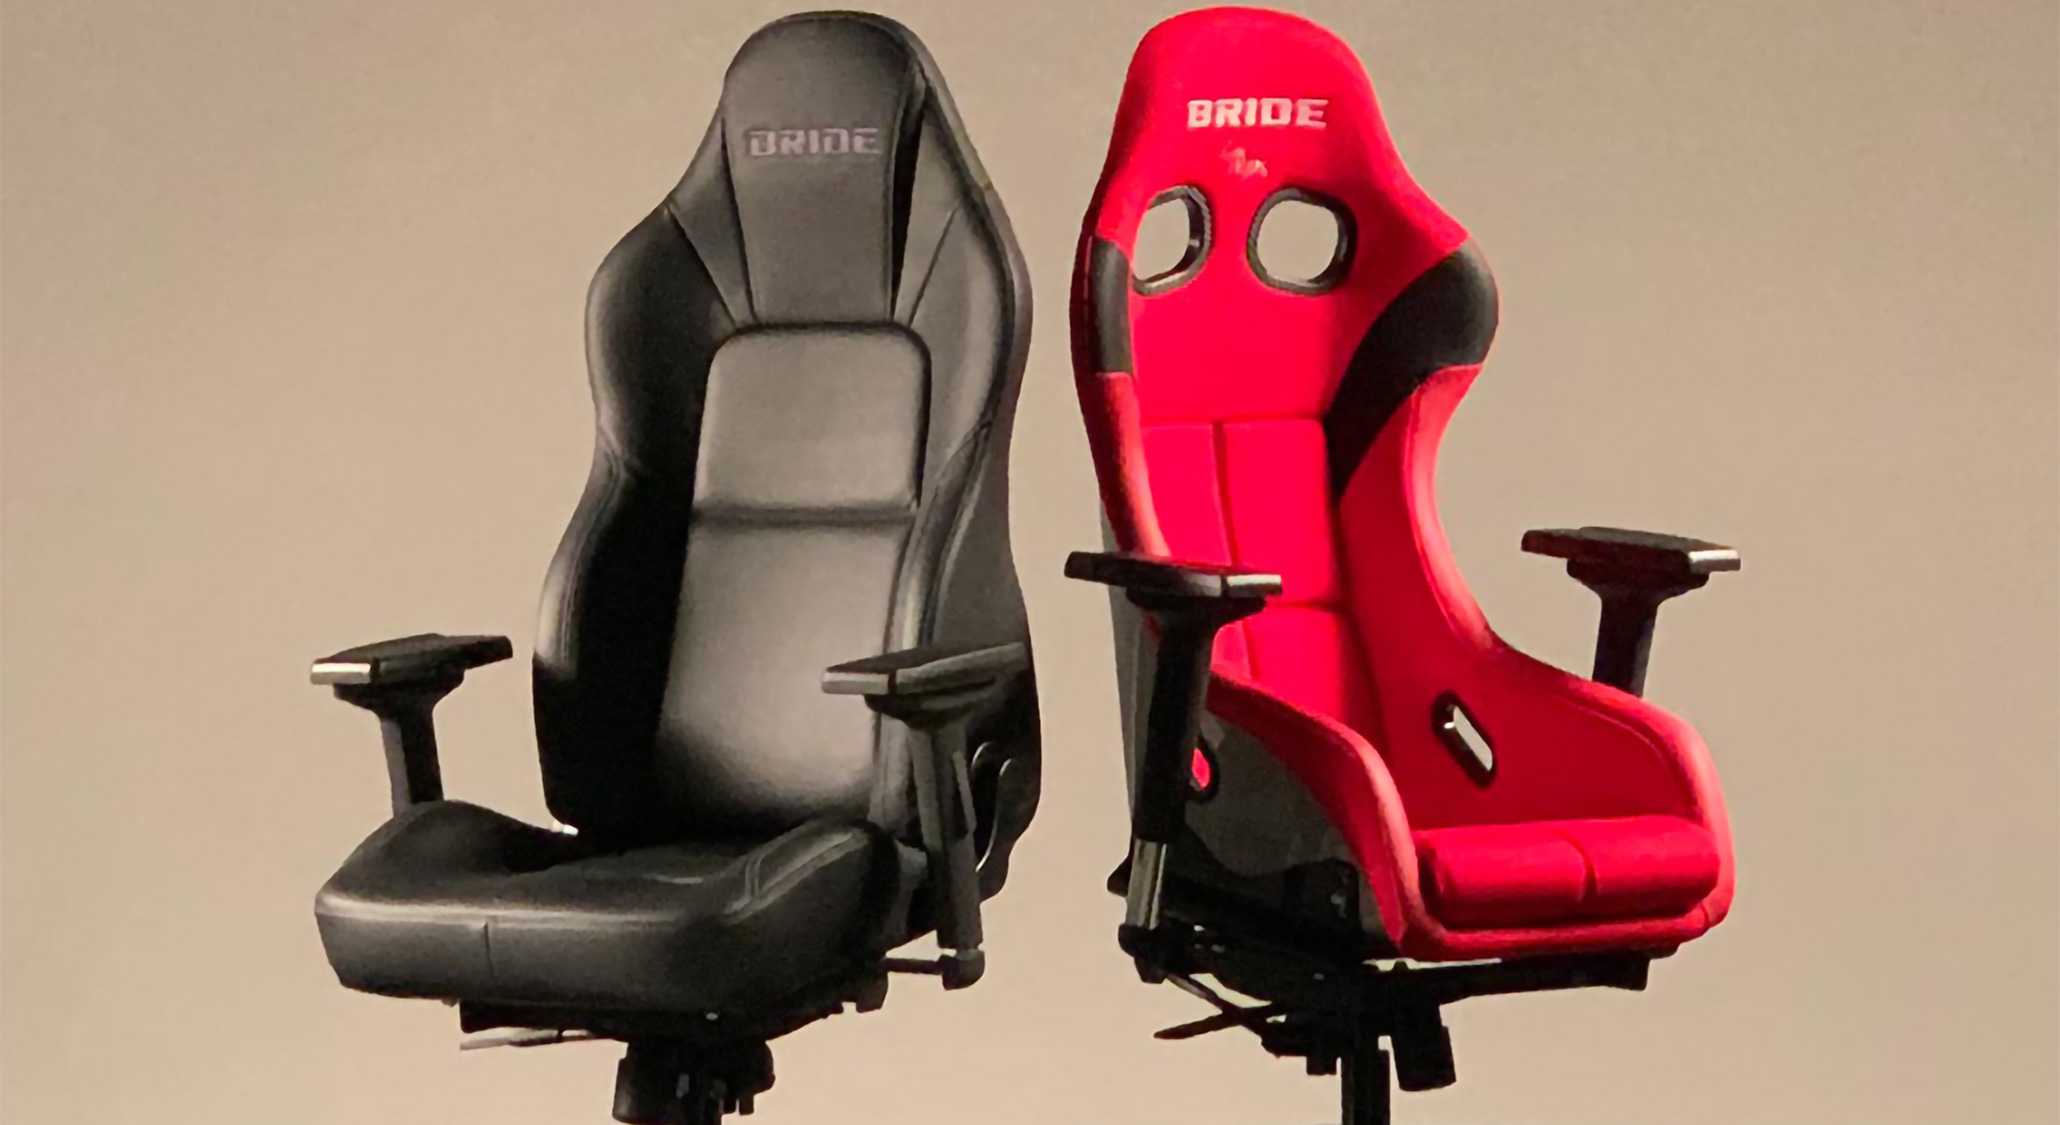 Multicaster Pro Lets You Turn Your Bride Racing Seat Into A Chair For Your Home Shouts